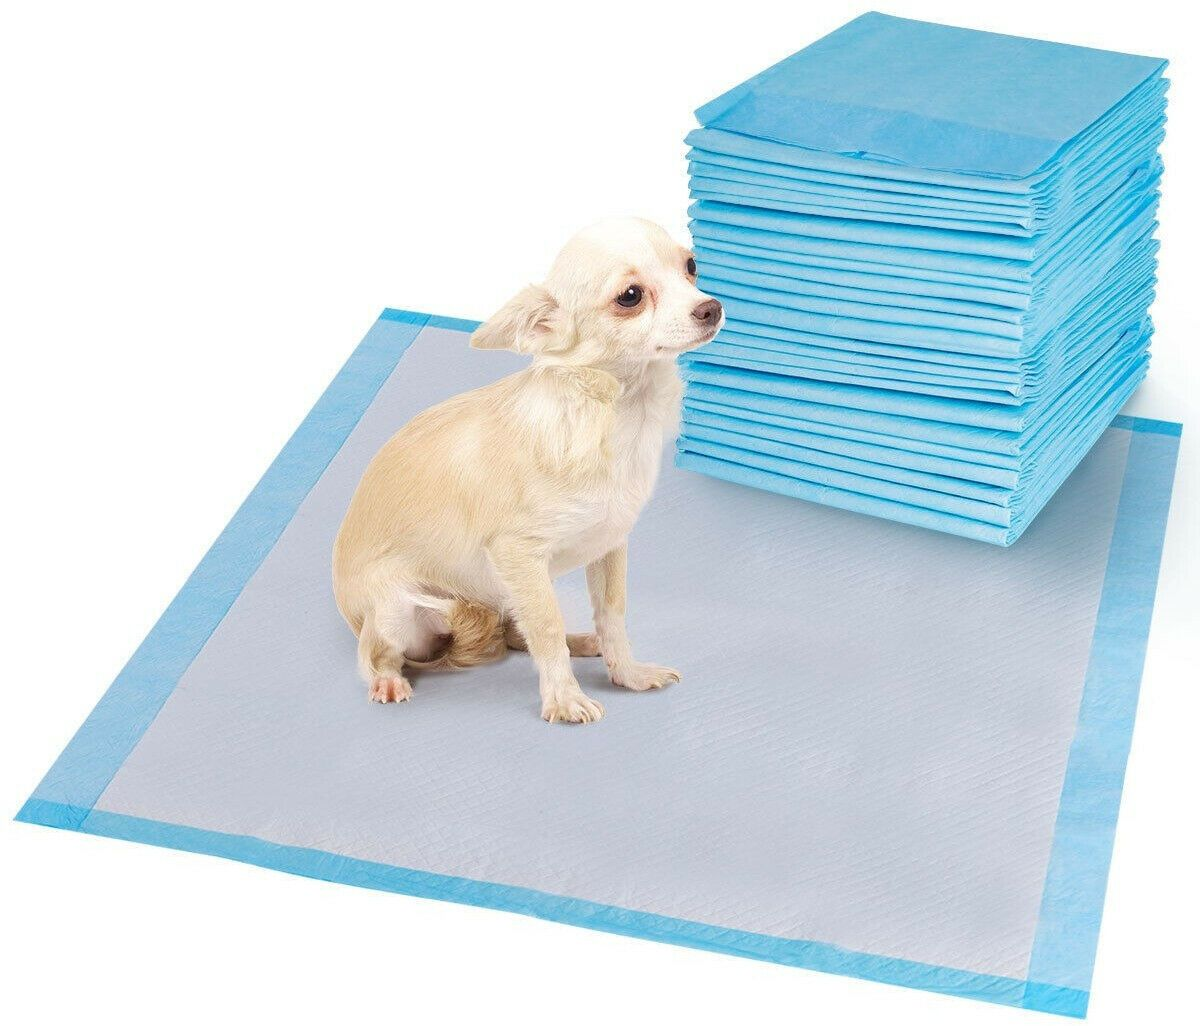 how to train a dog to wee on pads